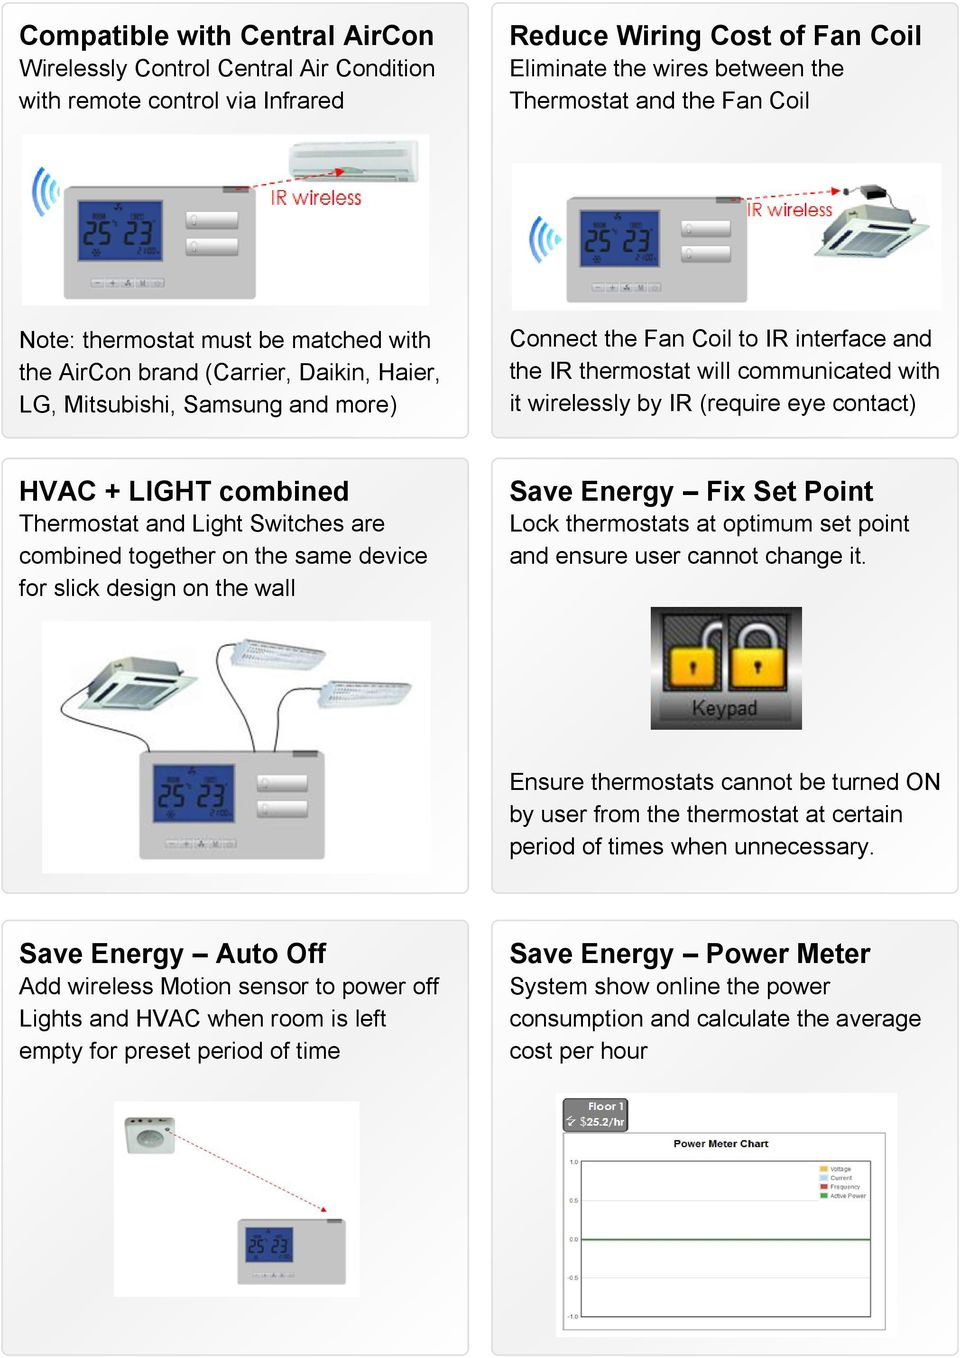 wirelessly by IR (require eye contact) HVAC + LIGHT combined Thermostat and Light Switches are combined together on the same device for slick design on the wall Save Energy Fix Set Point Lock